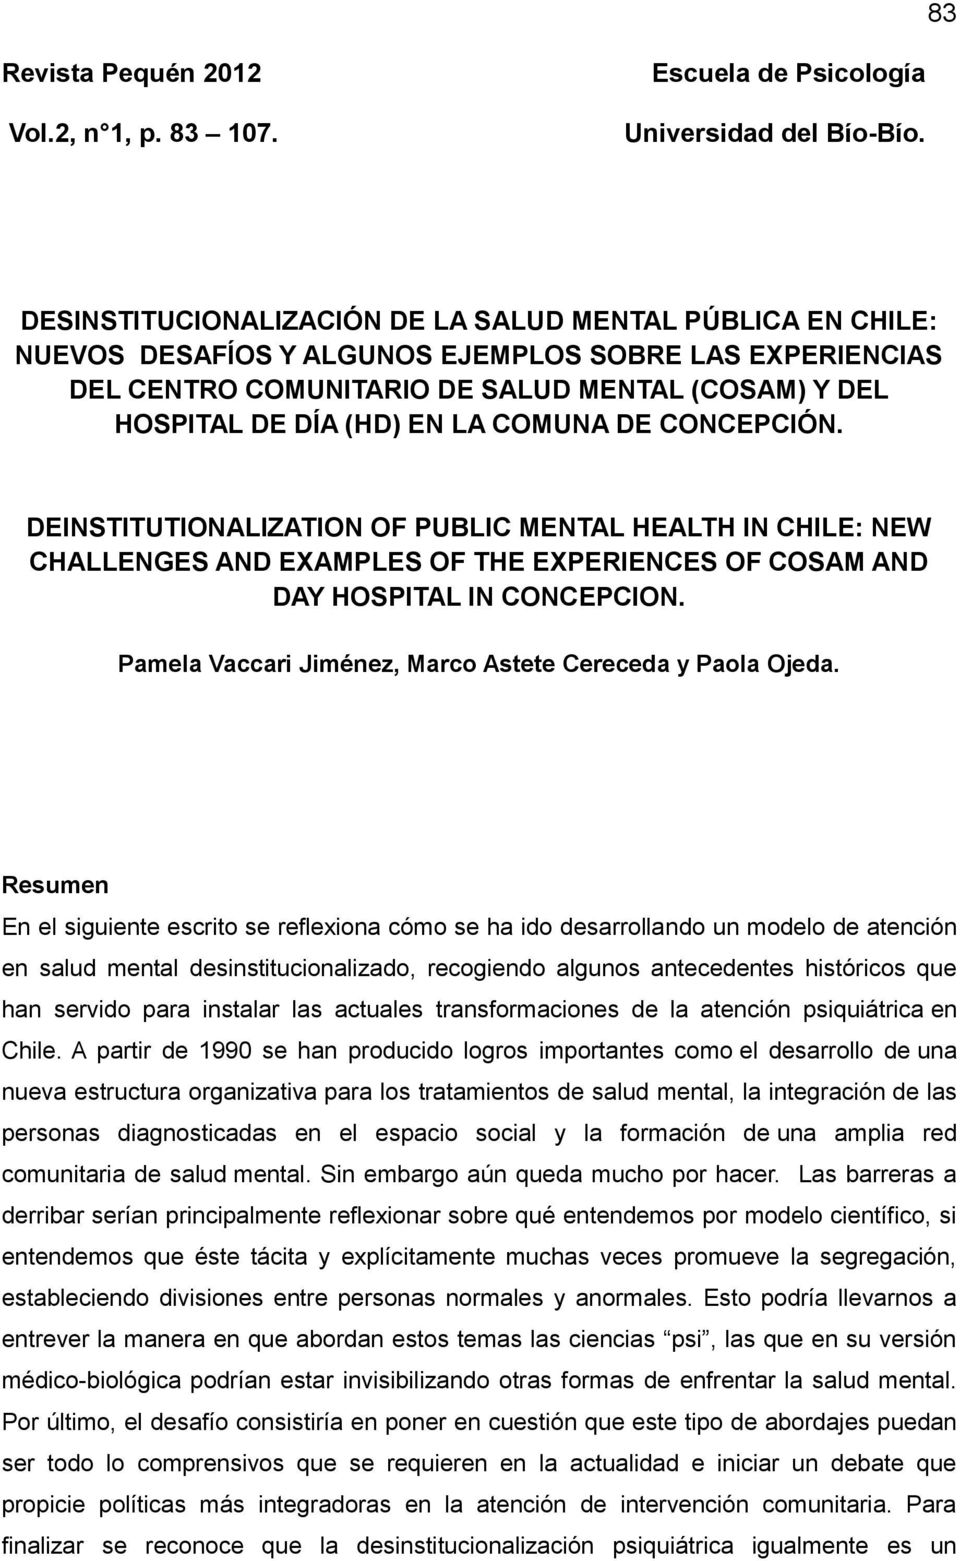 COMUNA DE CONCEPCIÓN. DEINSTITUTIONALIZATION OF PUBLIC MENTAL HEALTH IN CHILE: NEW CHALLENGES AND EXAMPLES OF THE EXPERIENCES OF COSAM AND DAY HOSPITAL IN CONCEPCION.